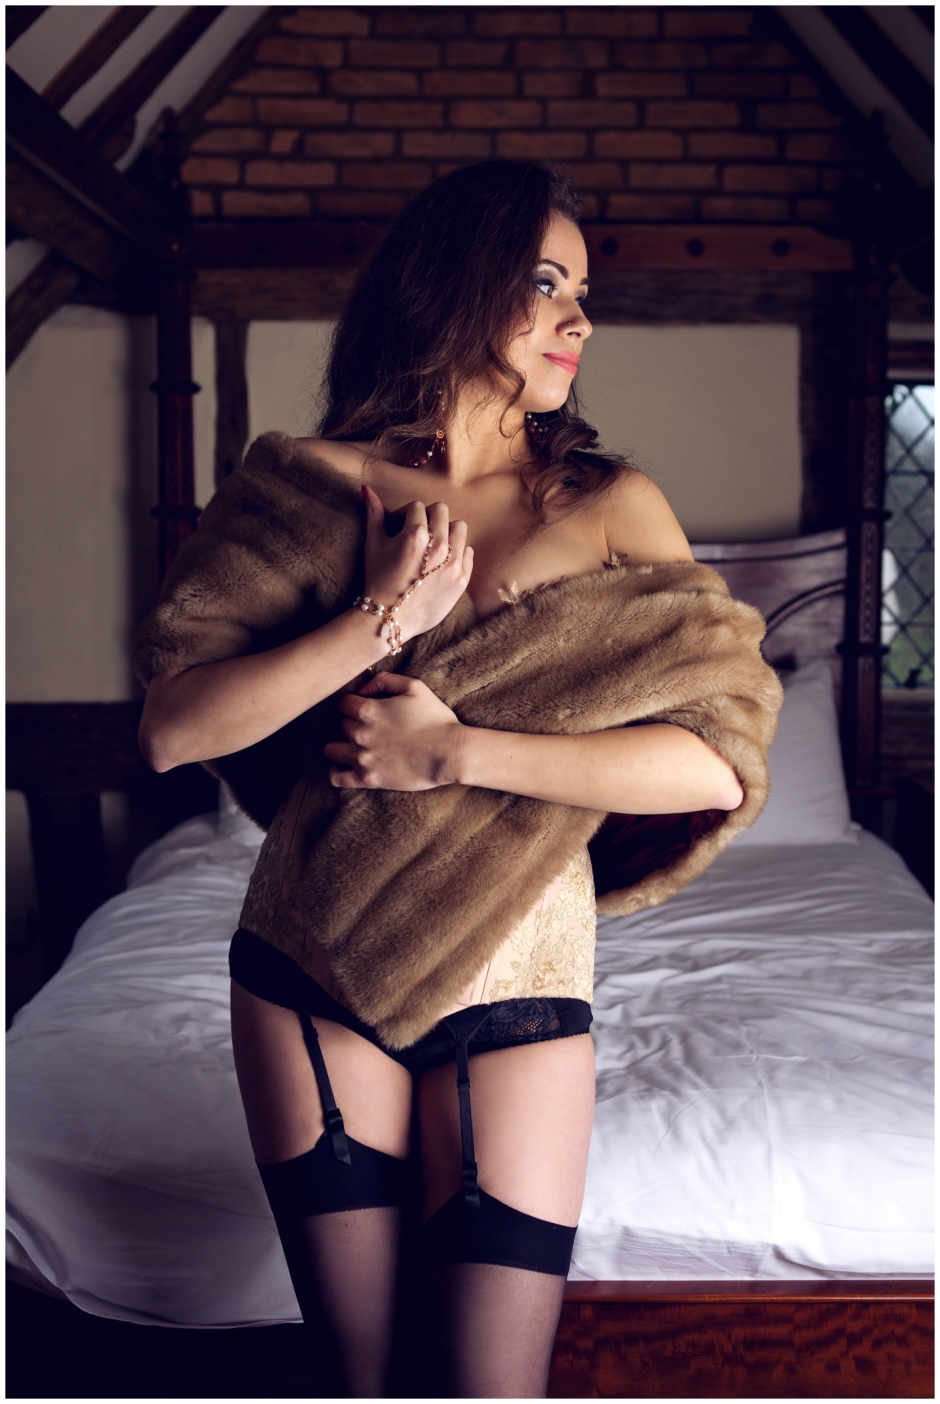 006 photography farm 2014 boudoir by Devon based photographer Elizabeth Armitage